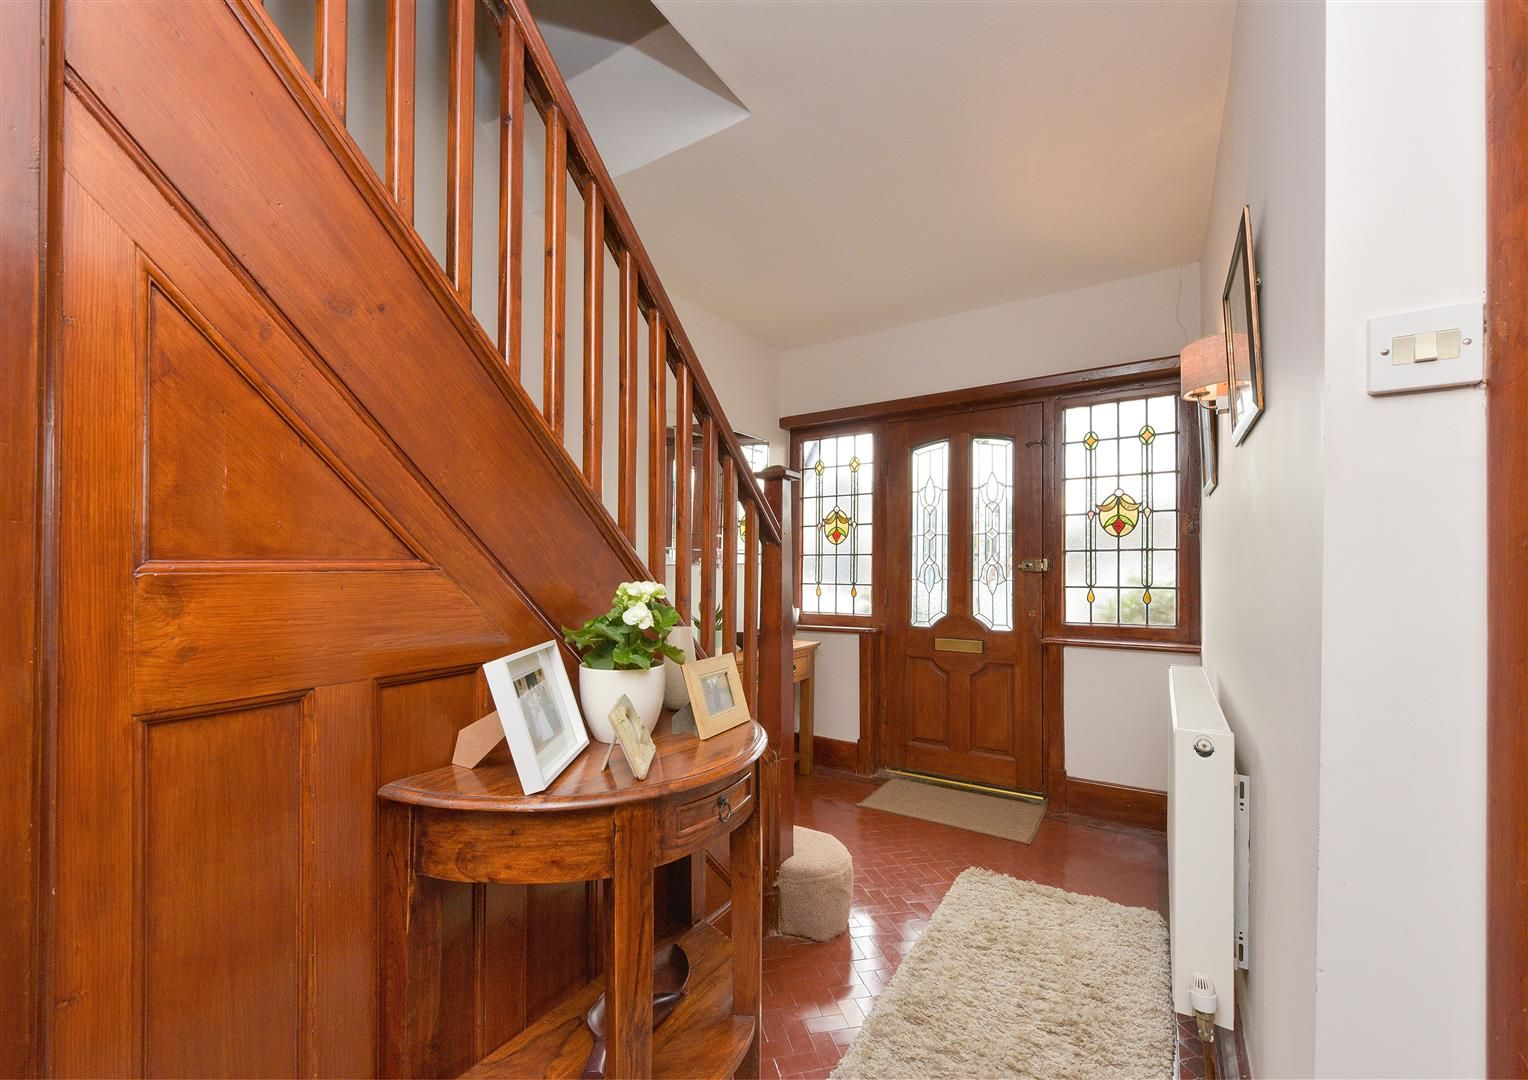 5 bed semi-detached for sale 3